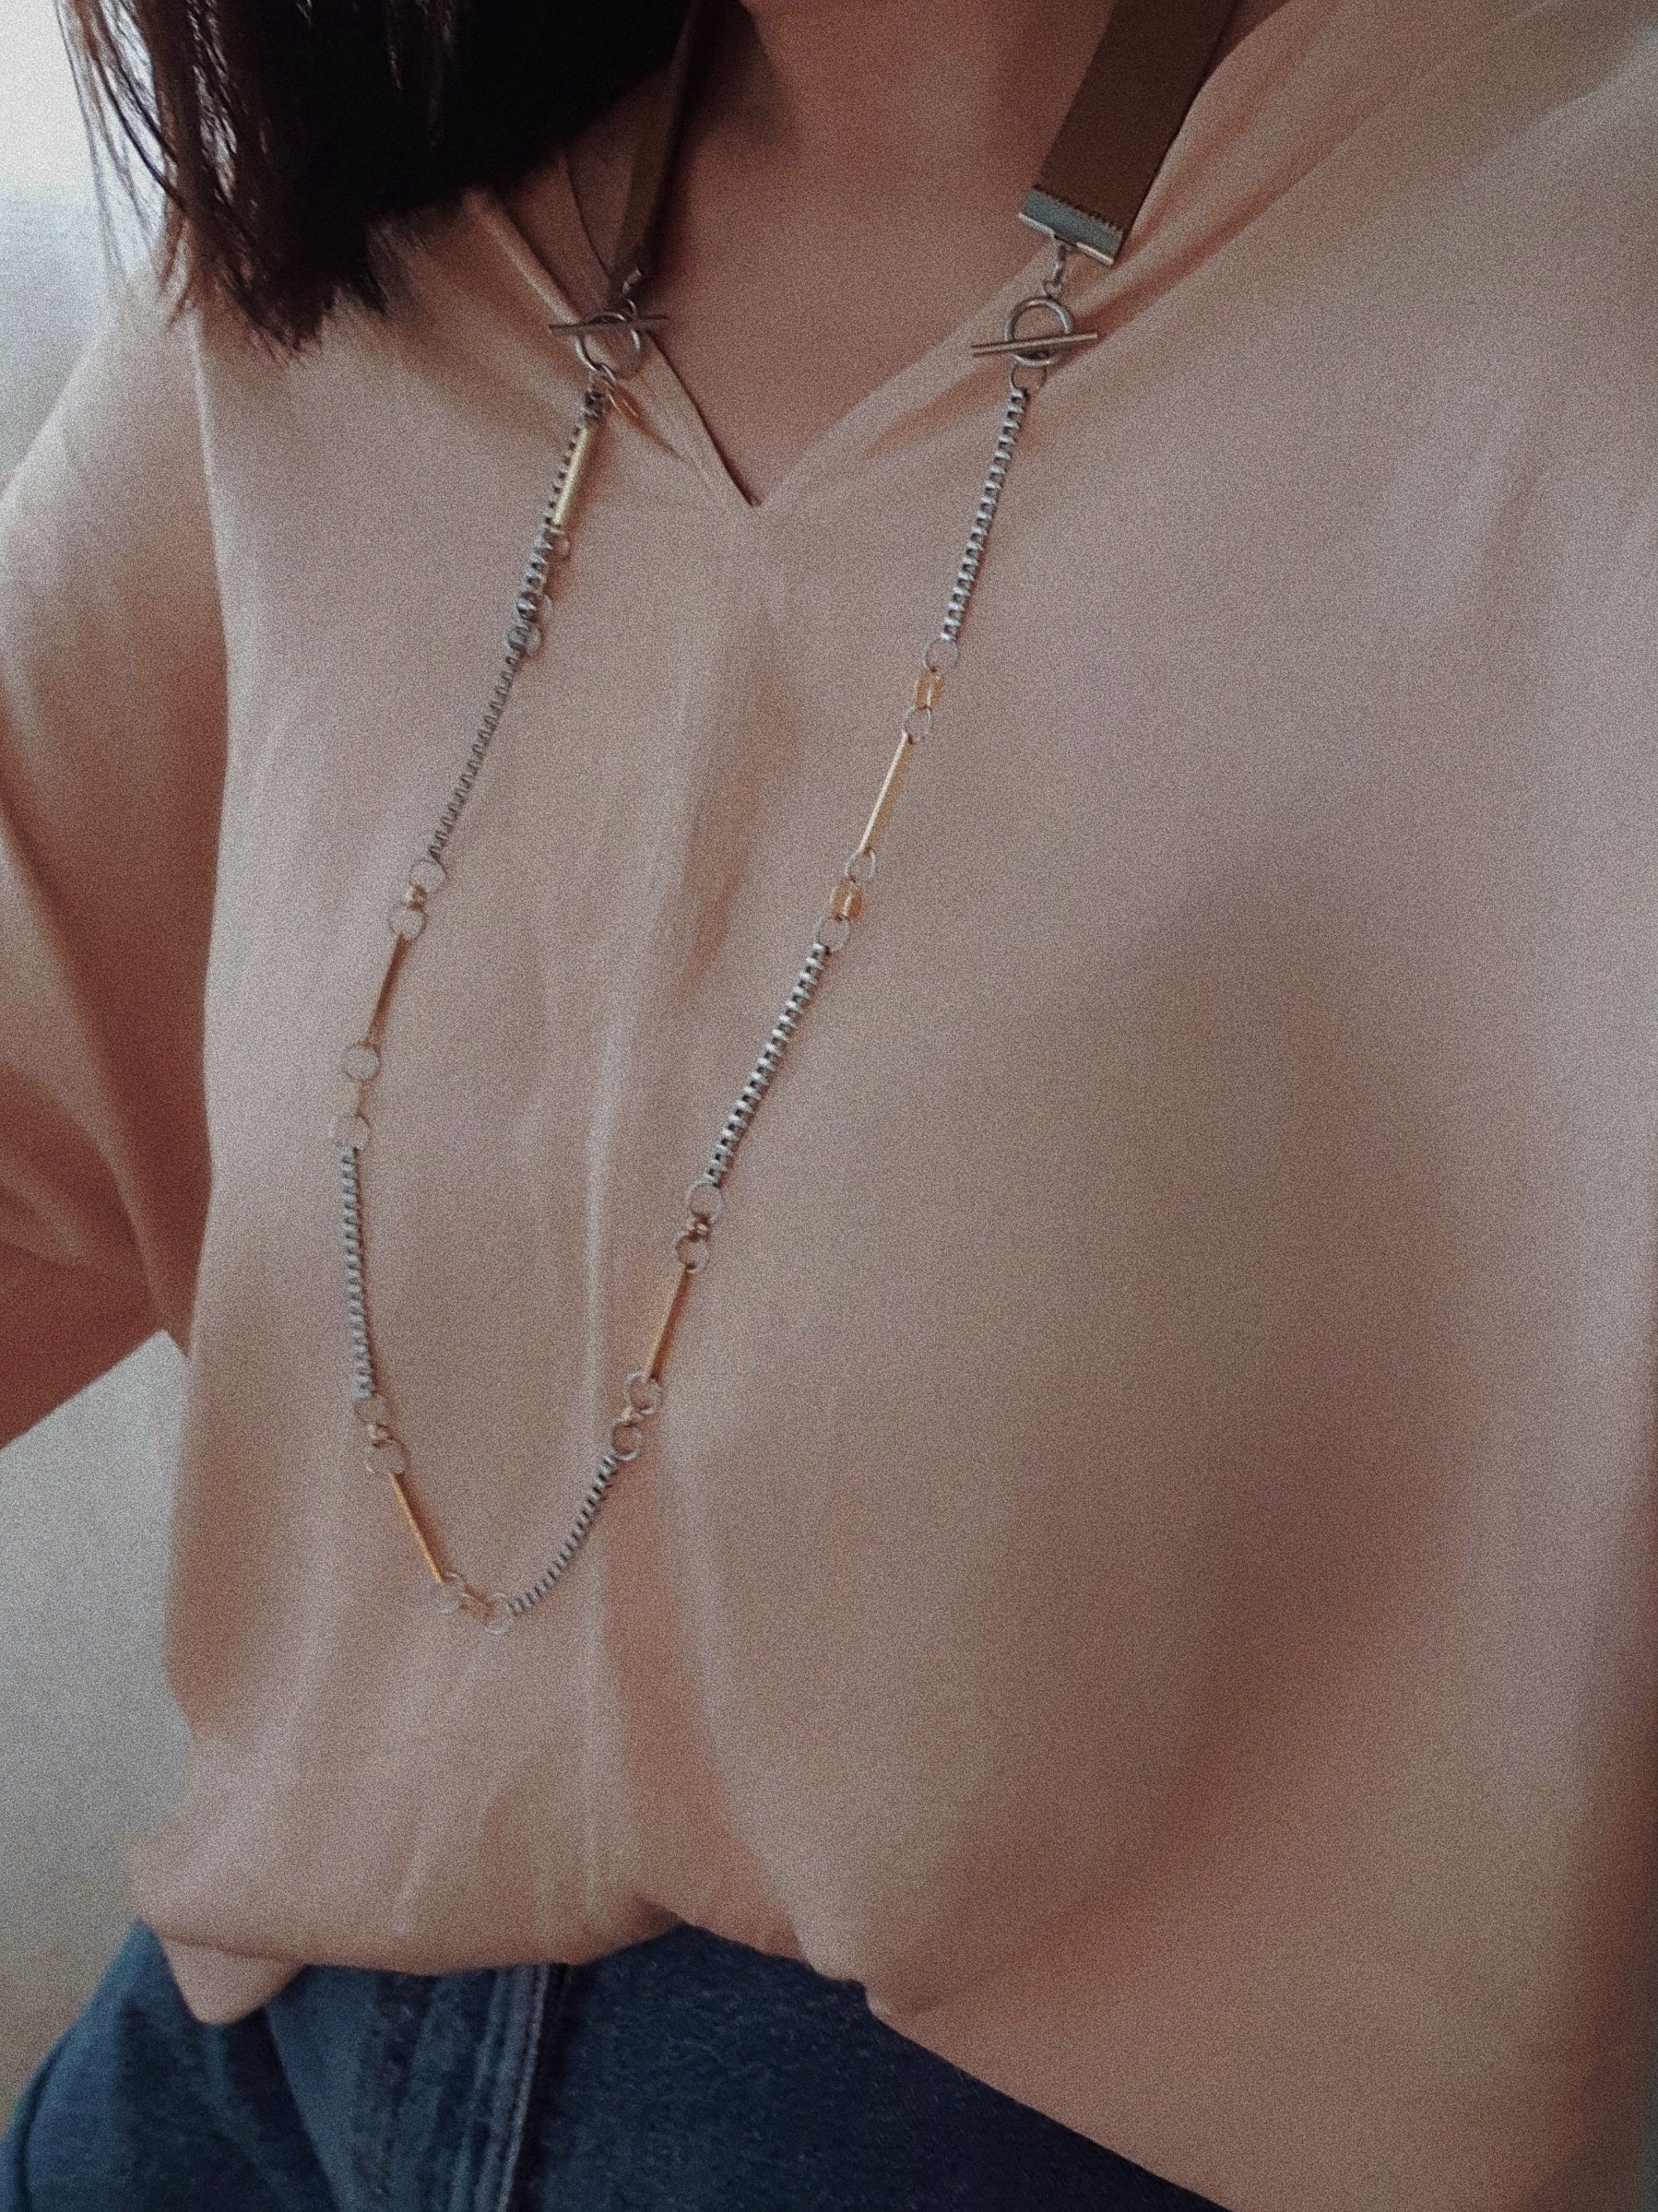 Provision | Neck Strap with Silver Toggle Clasps - YARD YARN - Handmade Jewellery - Singapore